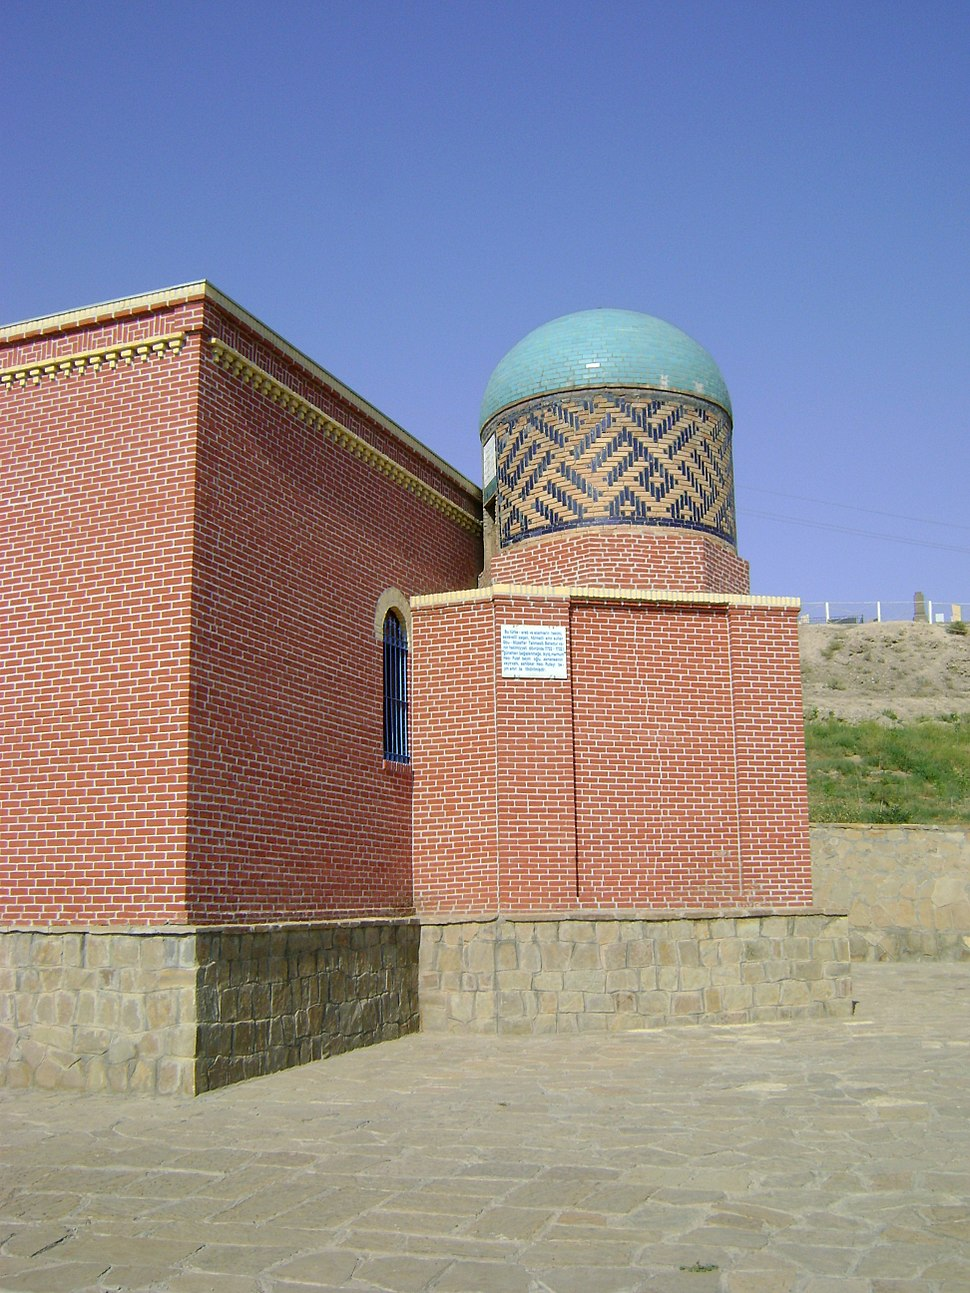 Haji Rufai Bey mosque - 18th century